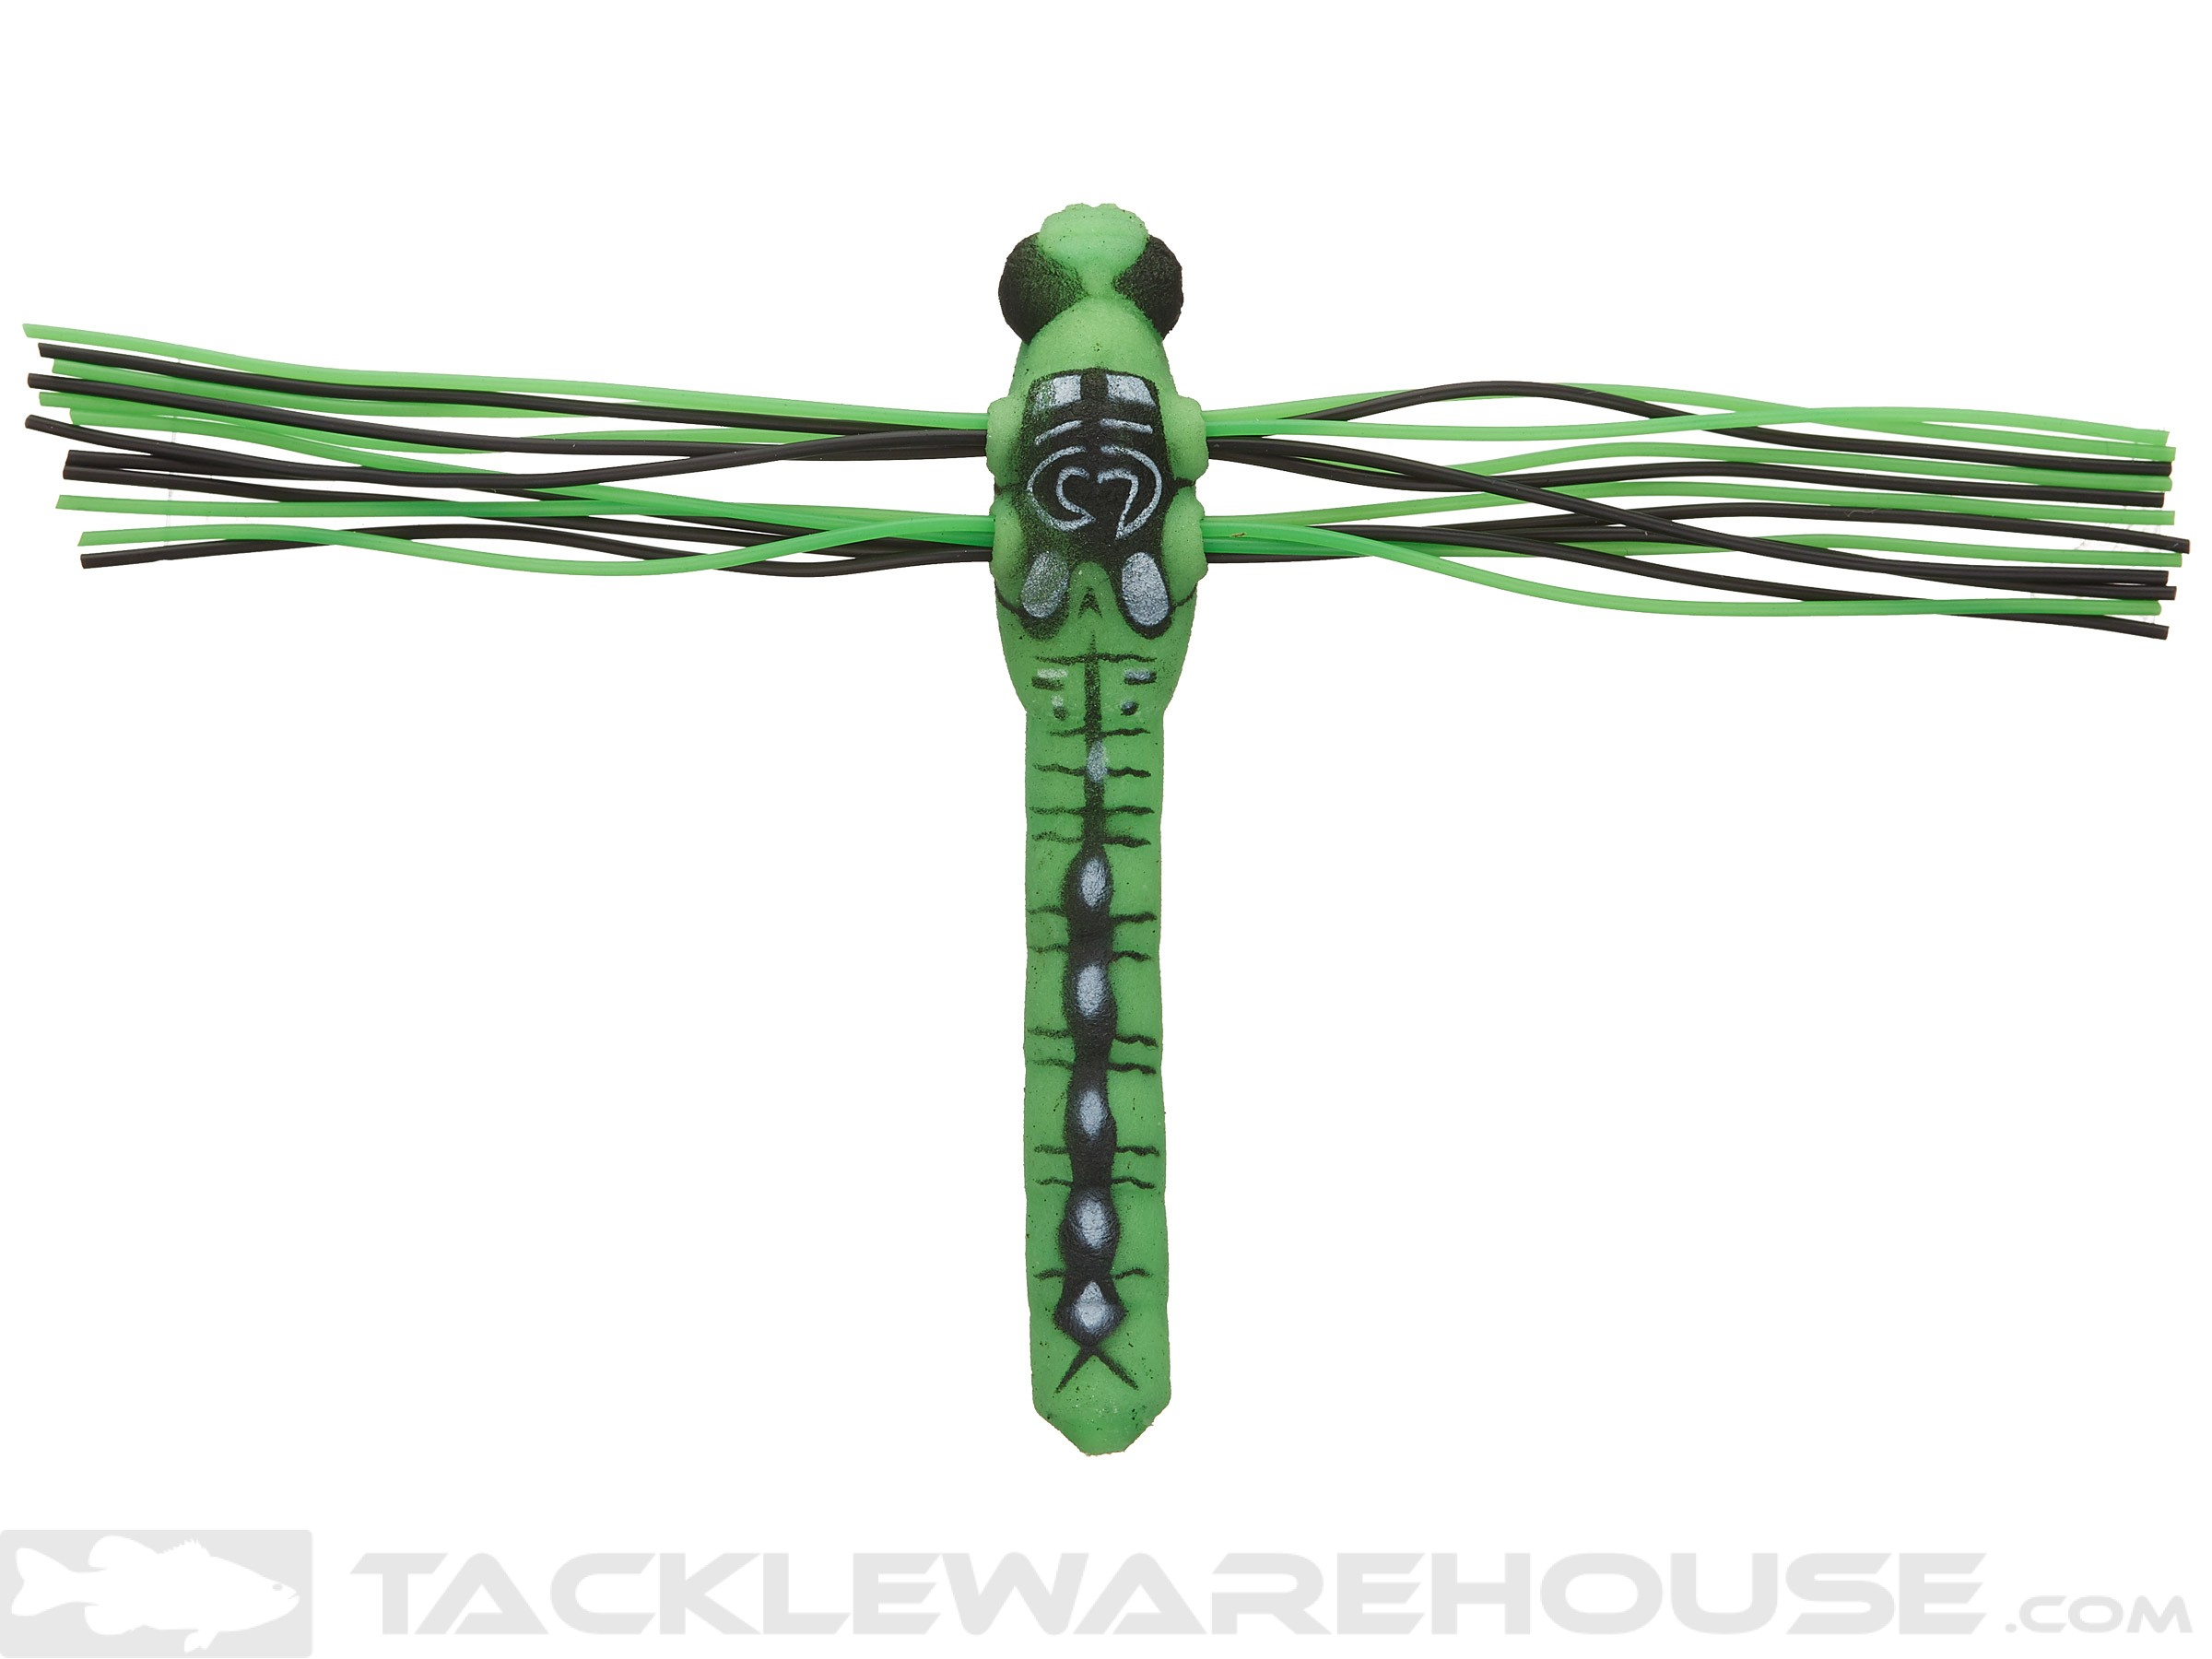 Lunkerhunt's Dragonfly